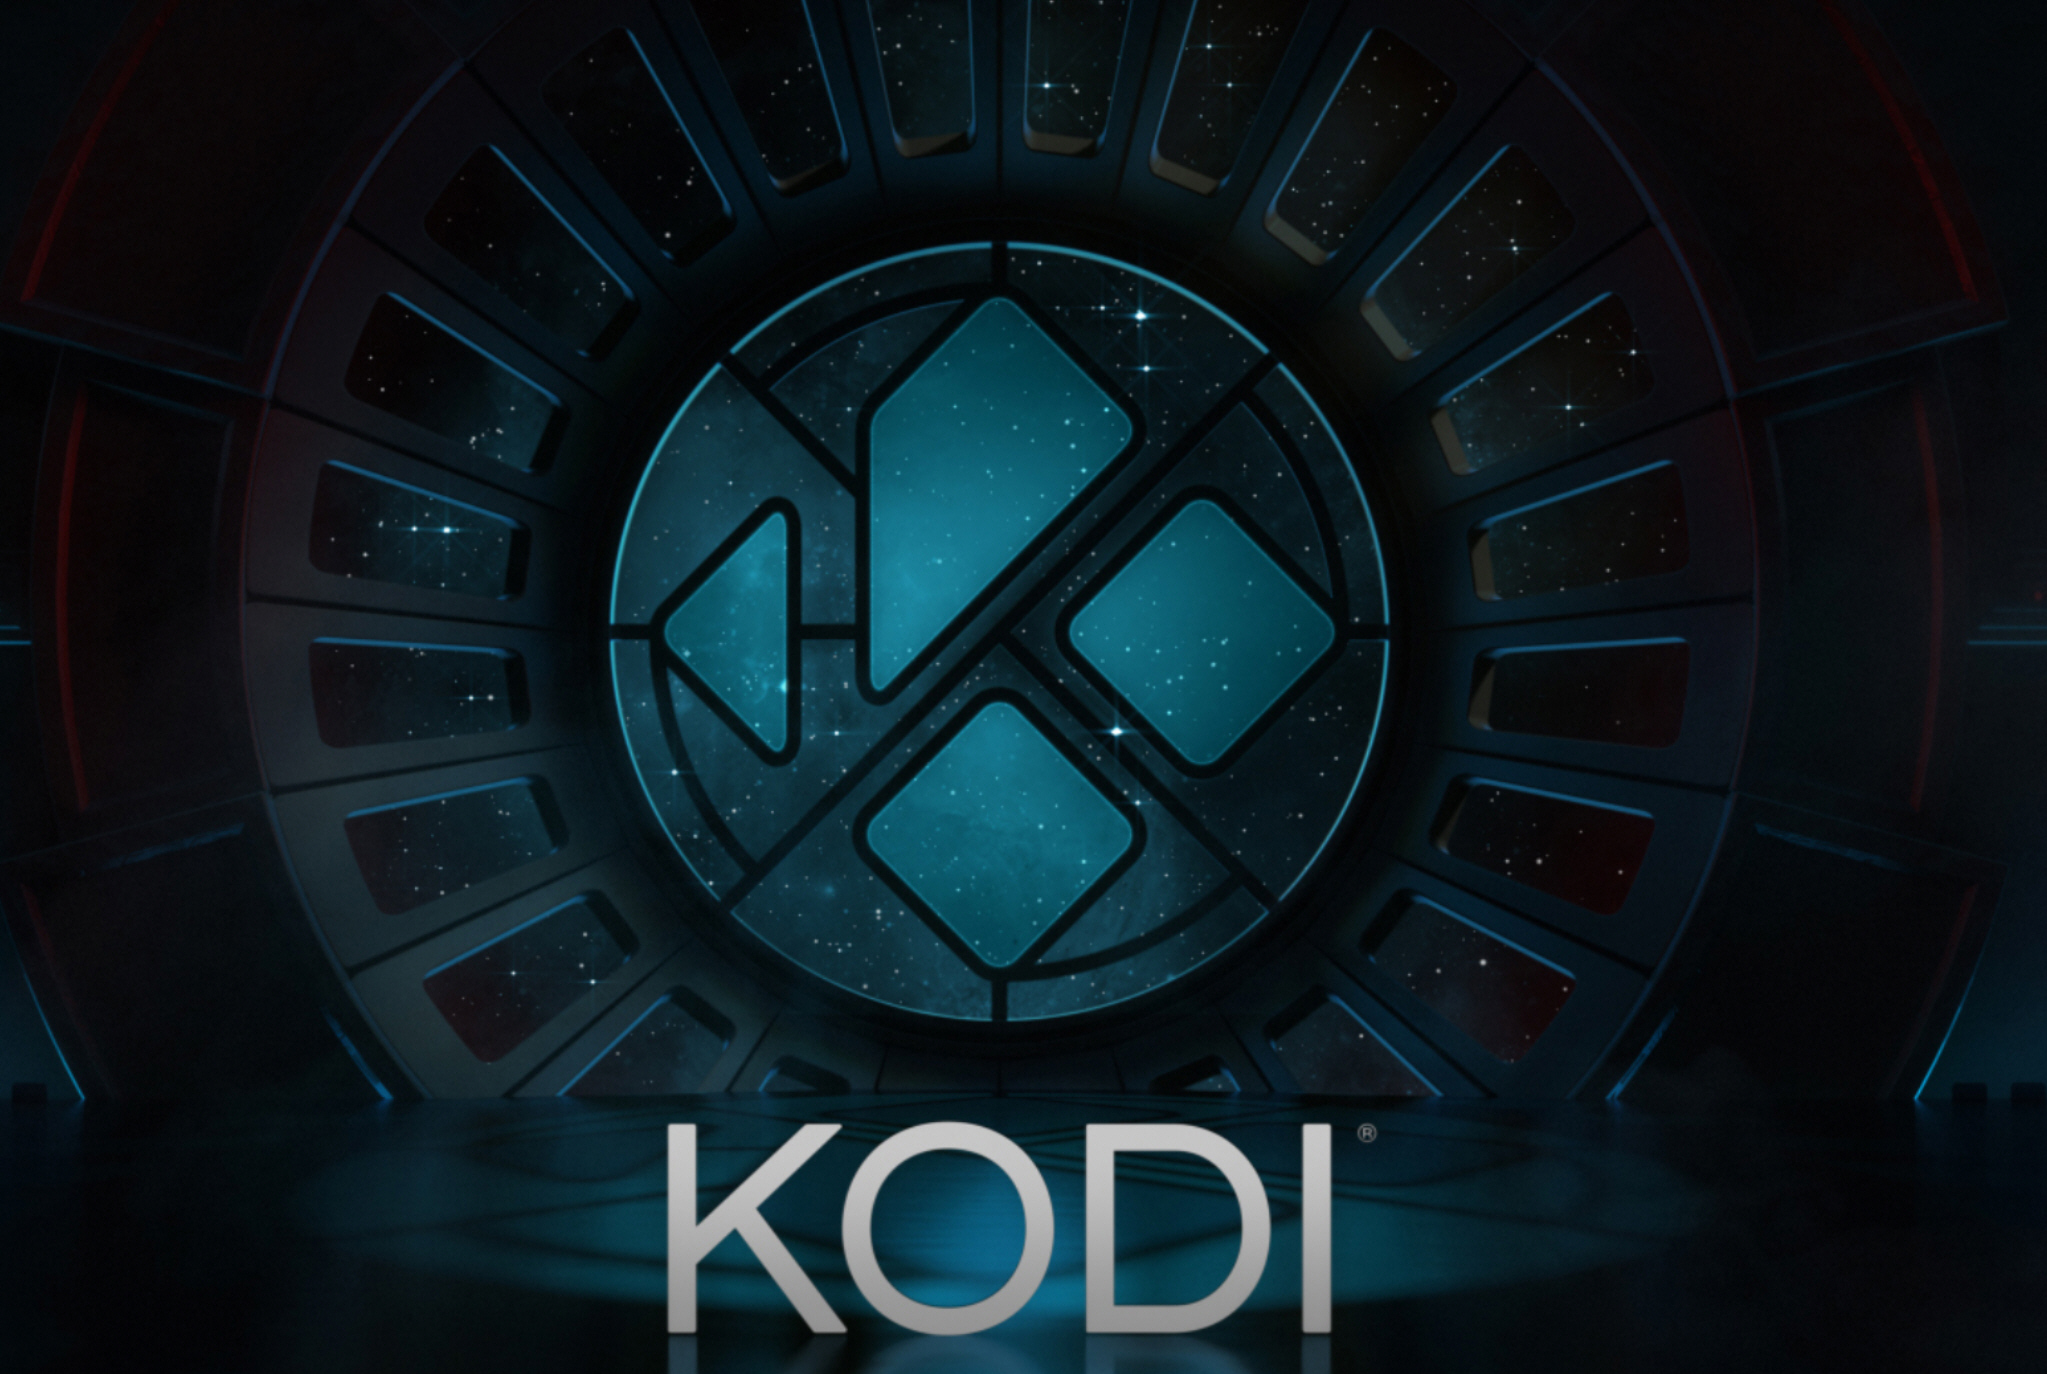 New Kodi 18 'Leia' Release Candidate (RC1) available to download now!